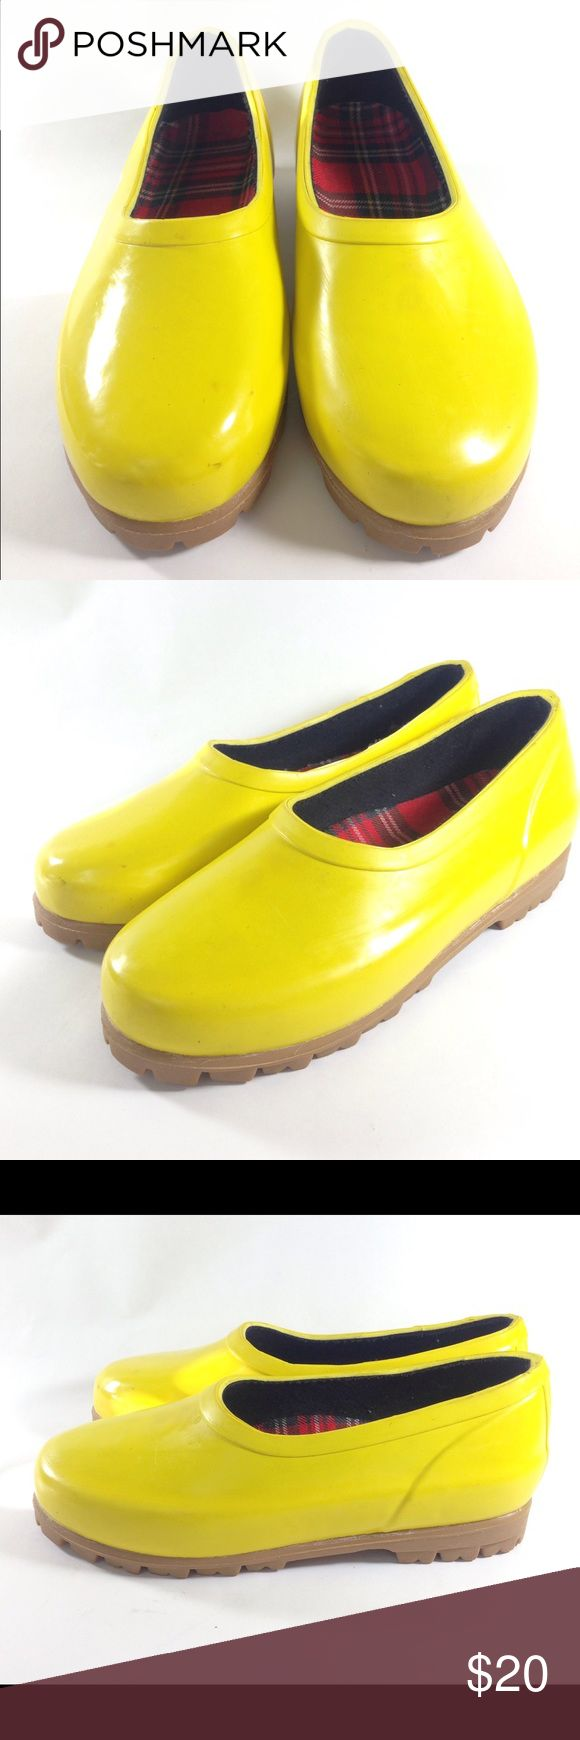 Mid West Yellow Duck Shoes Size 6 ITEM: MidWest Yellow Duck Boots Women's Size 6  CONDITION: Good Condition! Overall signs of wear. Some scuffing.    100% AUTHENTIC AND SATISFACTION GUARANTEED! NO FAKES! NO VARIANTS! PLEASE CHECK OUR EXCELLENT FEEDBACK!  SHIPPING & HANDLING:  *US - Double wrapped with delivery confirmation/signature confirmation if necessary.   SAVE US AS A FAVORITE SELLER!!! CHECK OUR OTHER LISTINGS!  *pictures of actual item(s) you will receive Mid West Shoes Winter & Rain…